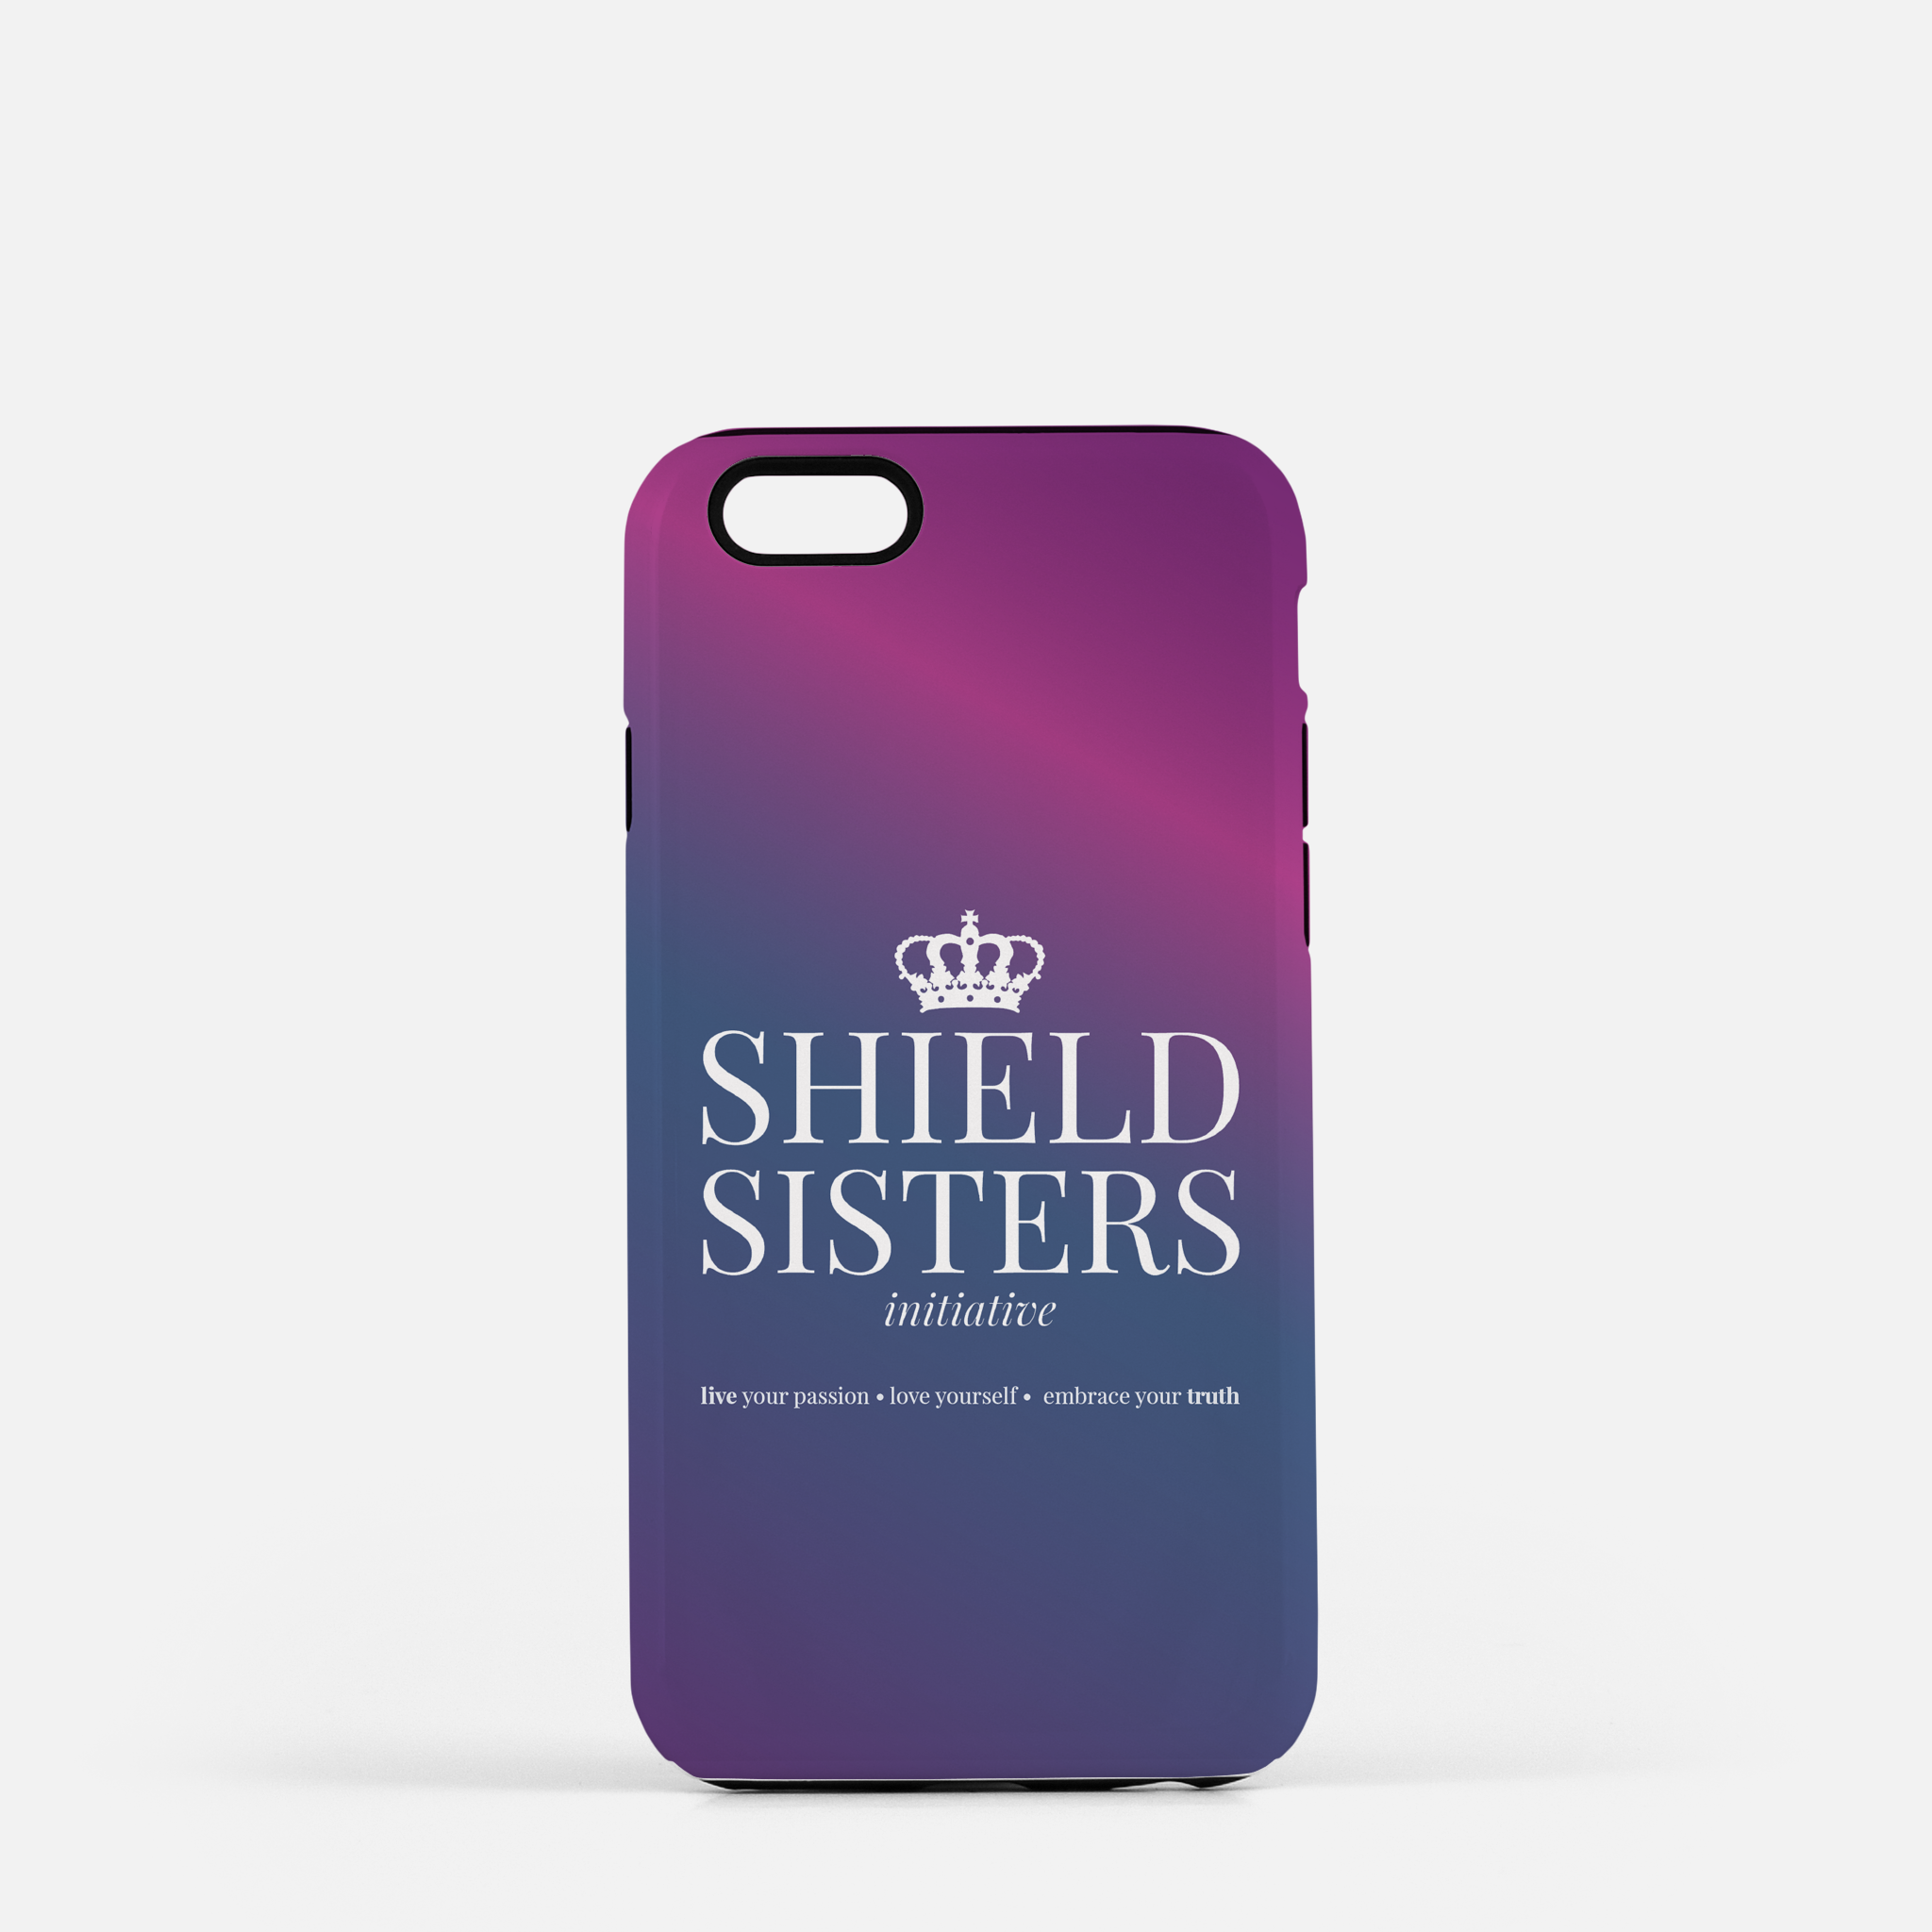 Off Spice Girls iPhone 6 Plus Case